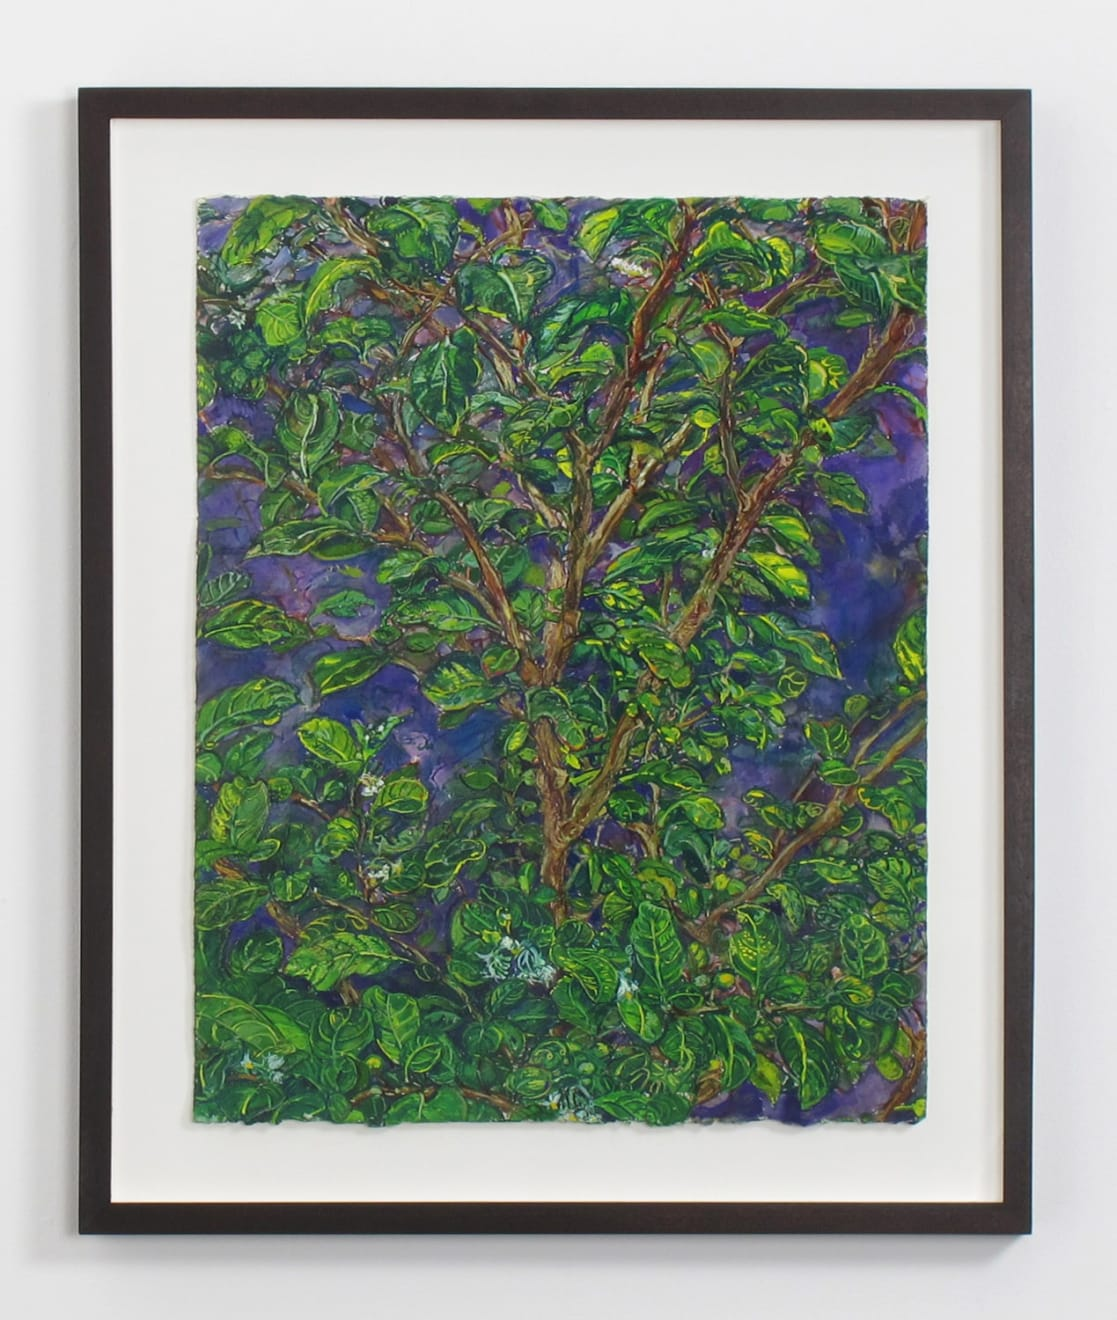 Beth Secor Young Hawthorne Late Summer, 2011-2013 ink, gouache, and pencil on paper 20 x 16 in (50.8 x 40.6 cm) BS 236 $3,750